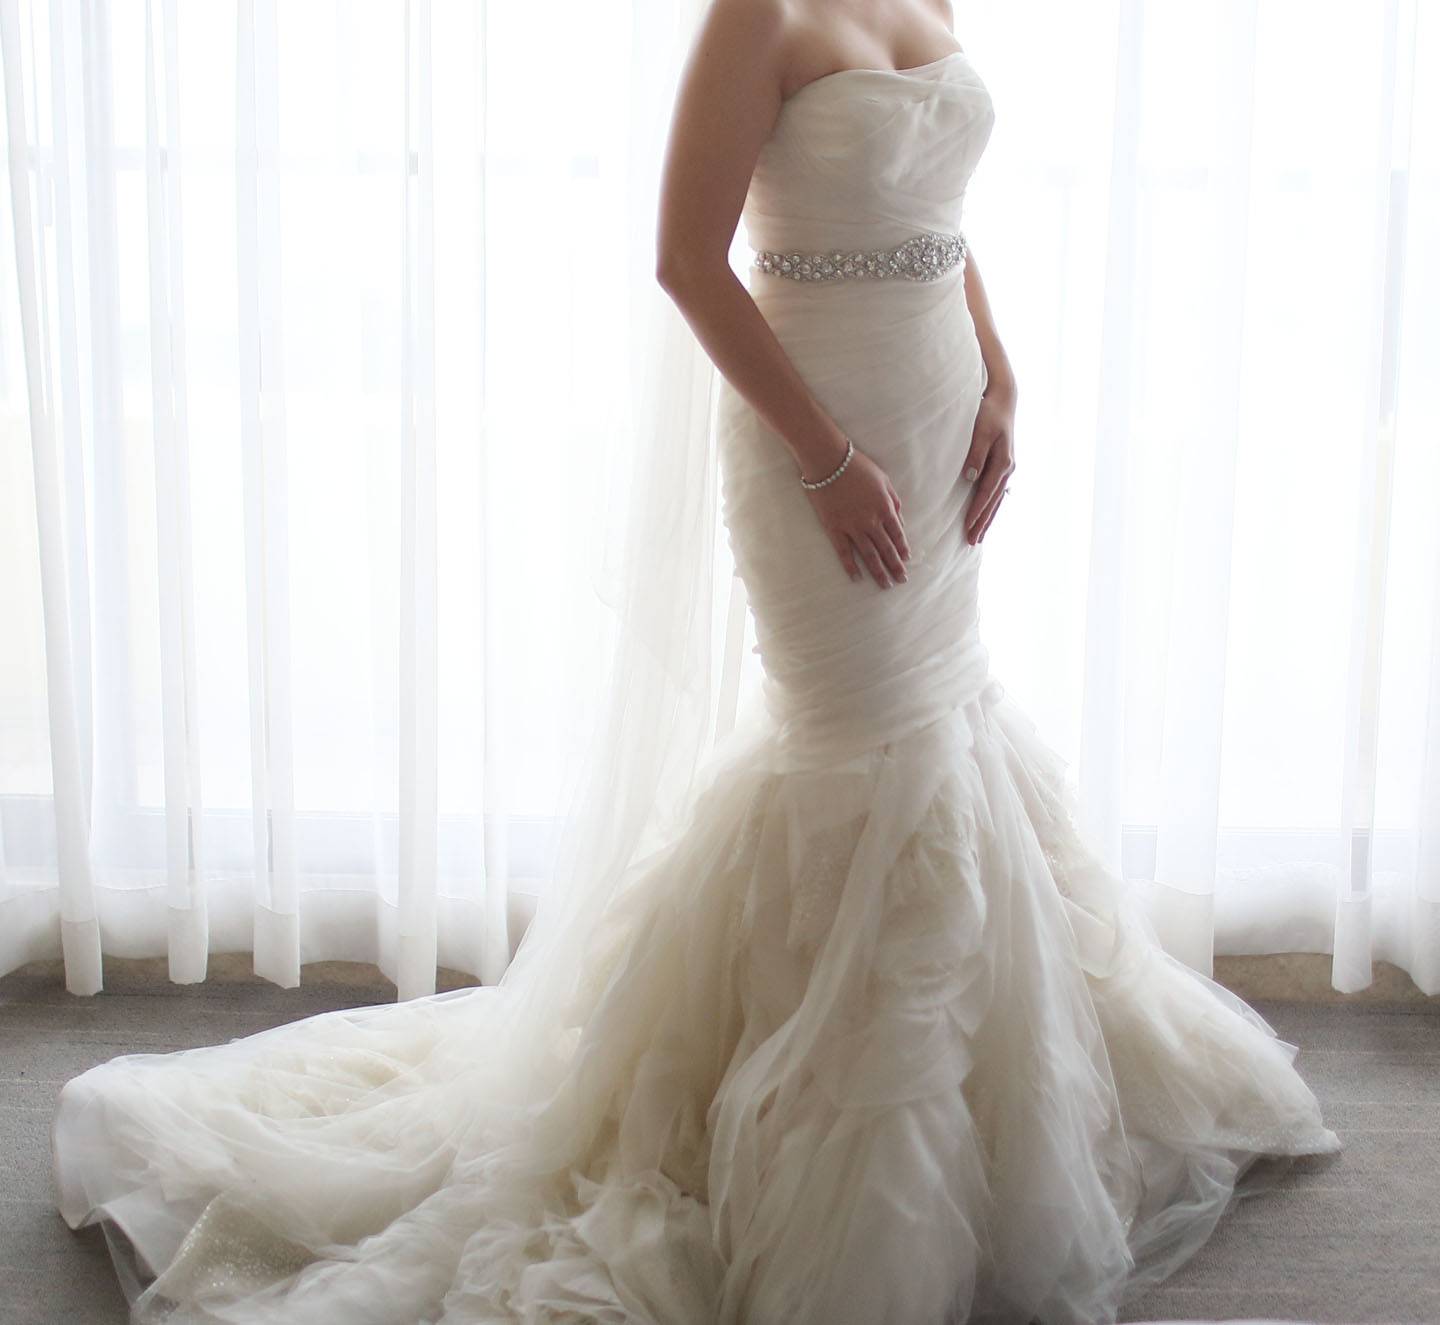 3069ba5bcd9e Wandering Princess: Pre-loved Vera Wang Gemma Wedding Gown For Sale ...